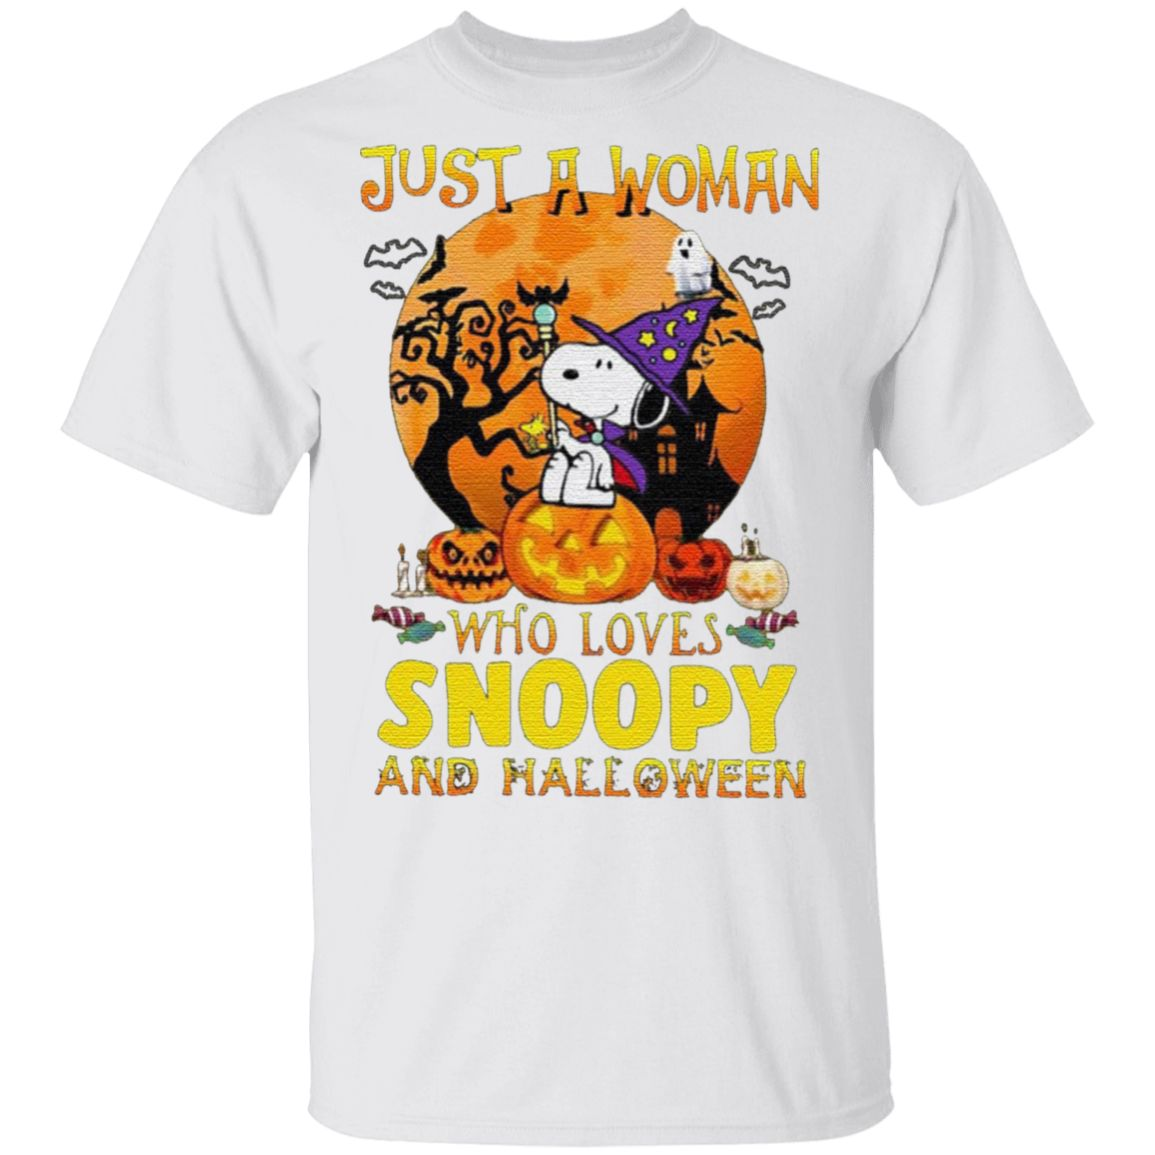 Just A Woman Who Loves Snoopy And Halloween T-Shirt